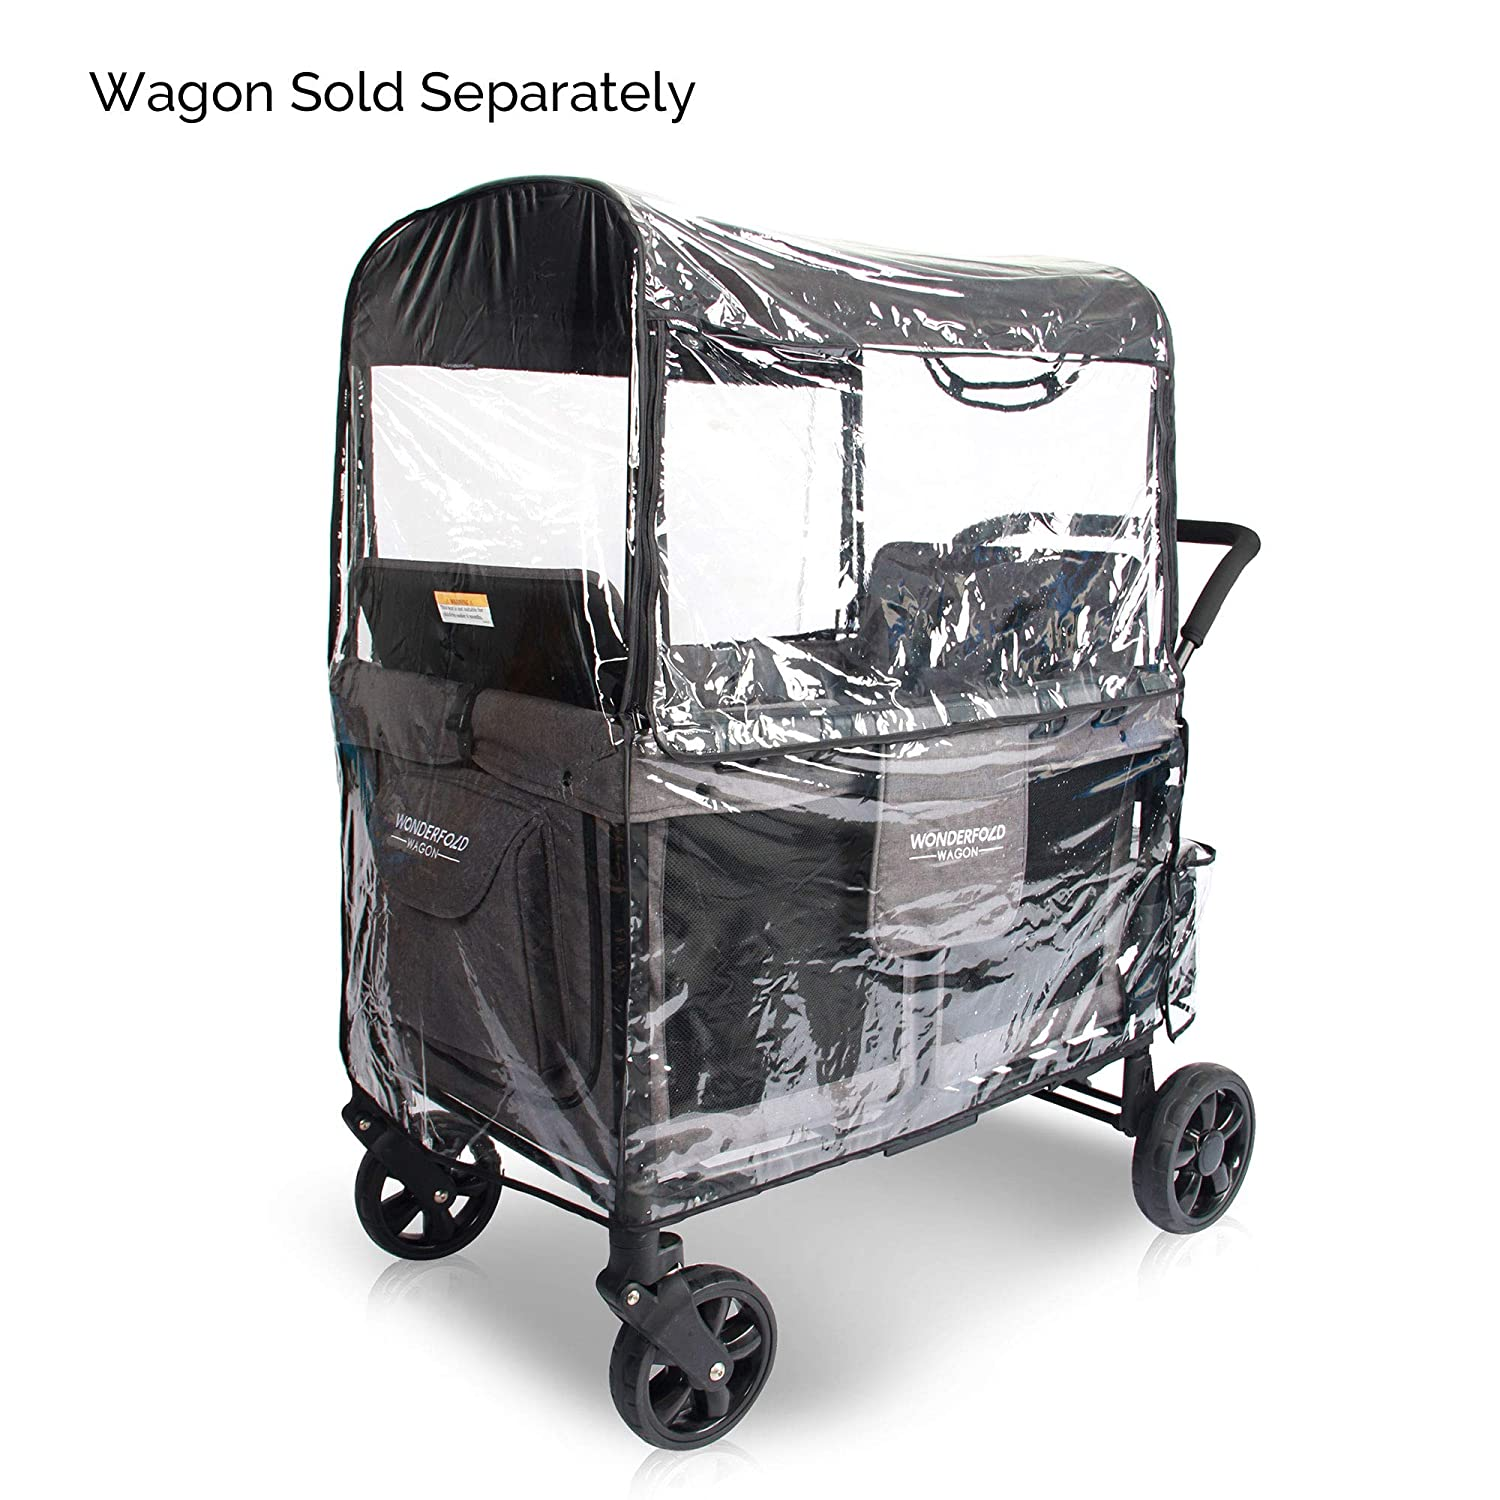 WonderFold Wagon W Series Rain Cover with Entrance (W4)